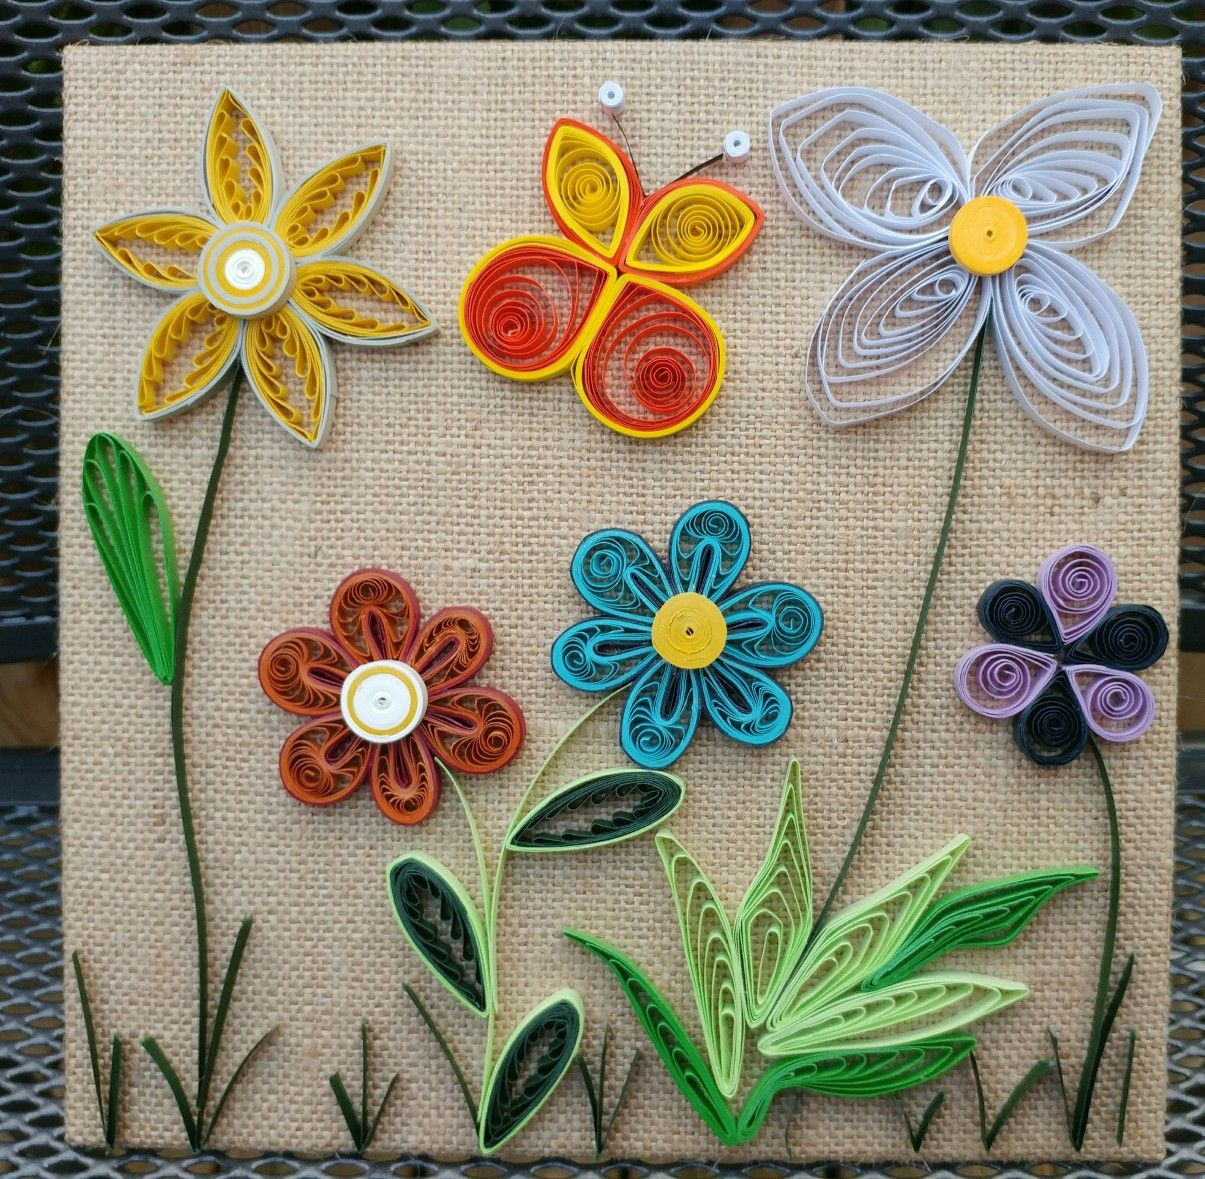 Windy's quilled canvas white, blue, purple and orange flowers with butterfly 07-09-17